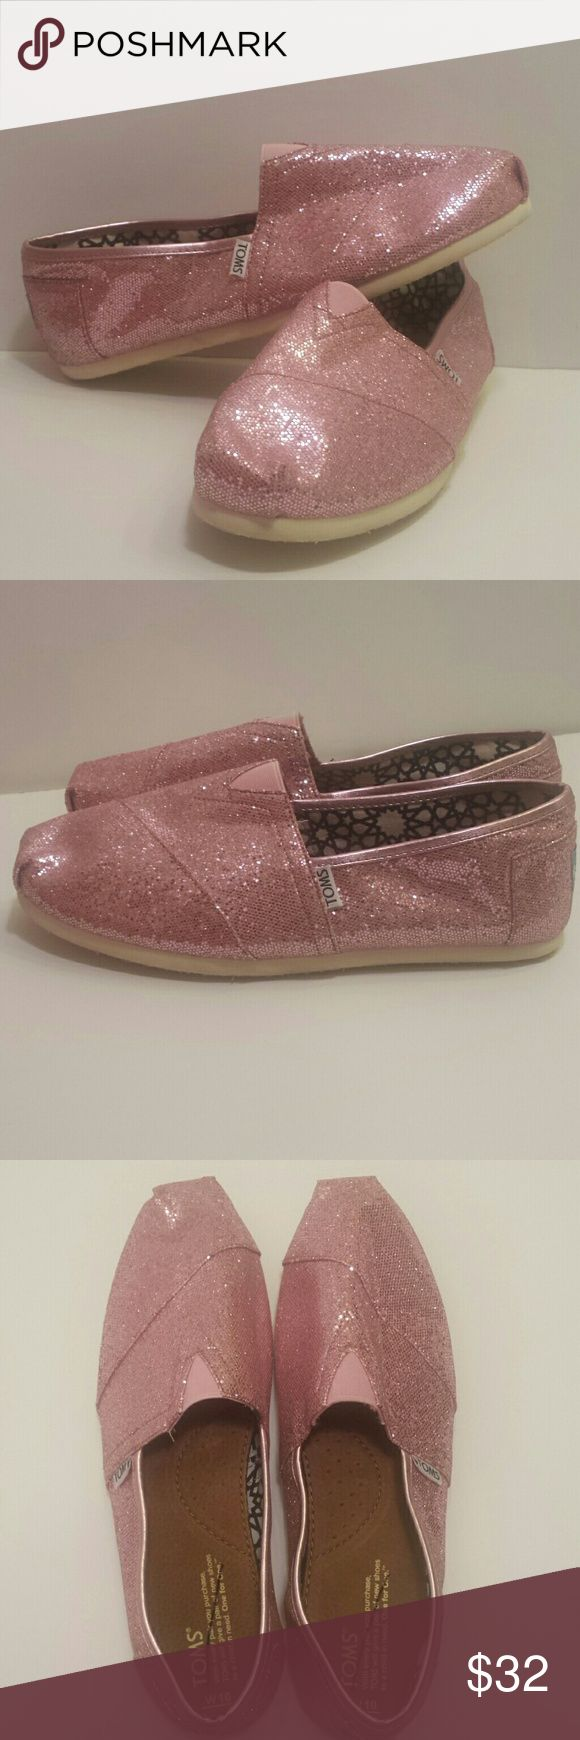 TOMS NWOT pink glitter original TOMS sparkly shoes NEW WITHOUT TAGS.   Tom's pink glitter shoes. These shoes are amazing, because glitter makes everything better. These shoes are in new without tags condition. They were purchased at a TOMS sale so there is a black slash through the logo on the inside...but you're going to wear them all the time so nobody will ever know. 😉  Women's size 10 TOMS Shoes Flats & Loafers